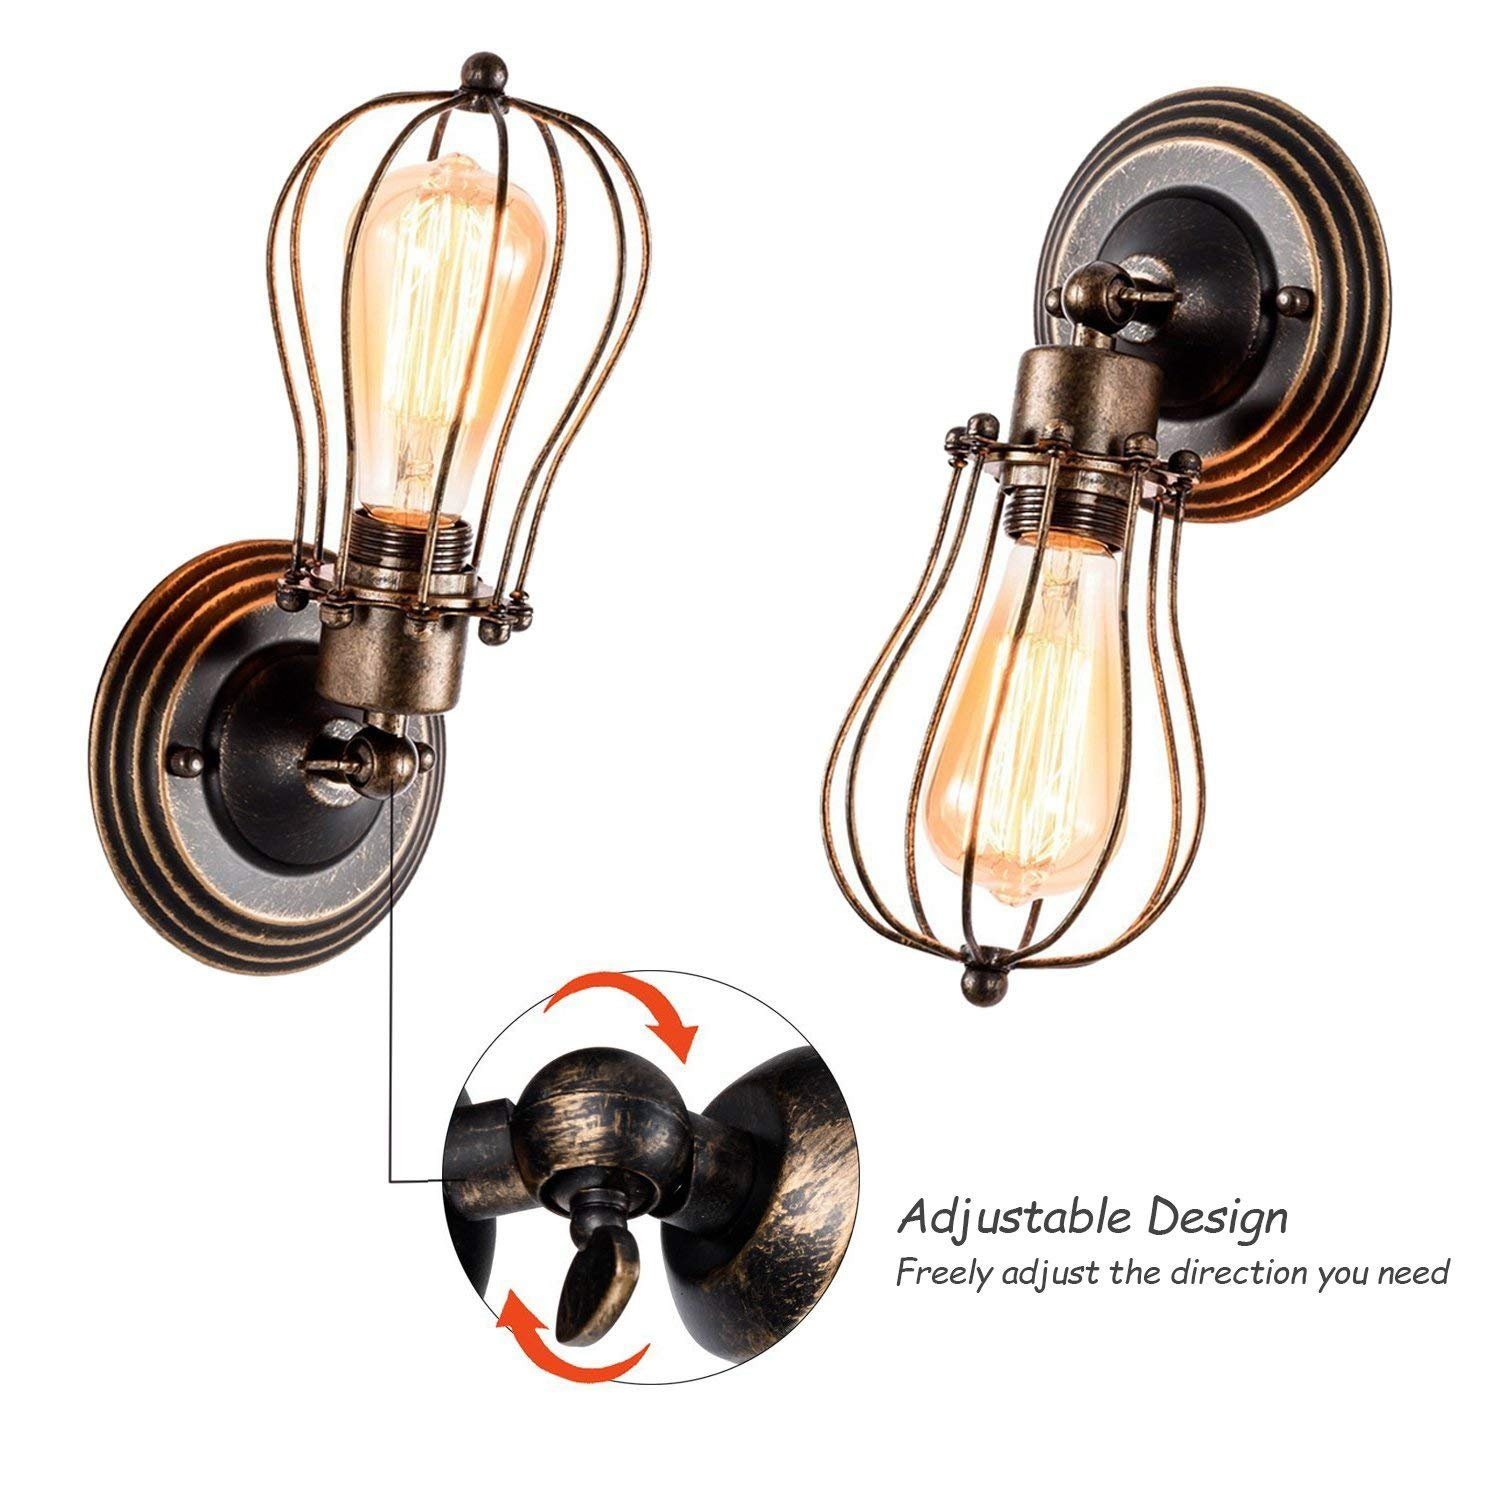 Single Head Vintage Wall Sconce Industrial Wire Cage Wall Sconce Loft Antique Wall Lights for Headboard Bedroom Farmhouse Barn Garage Porch